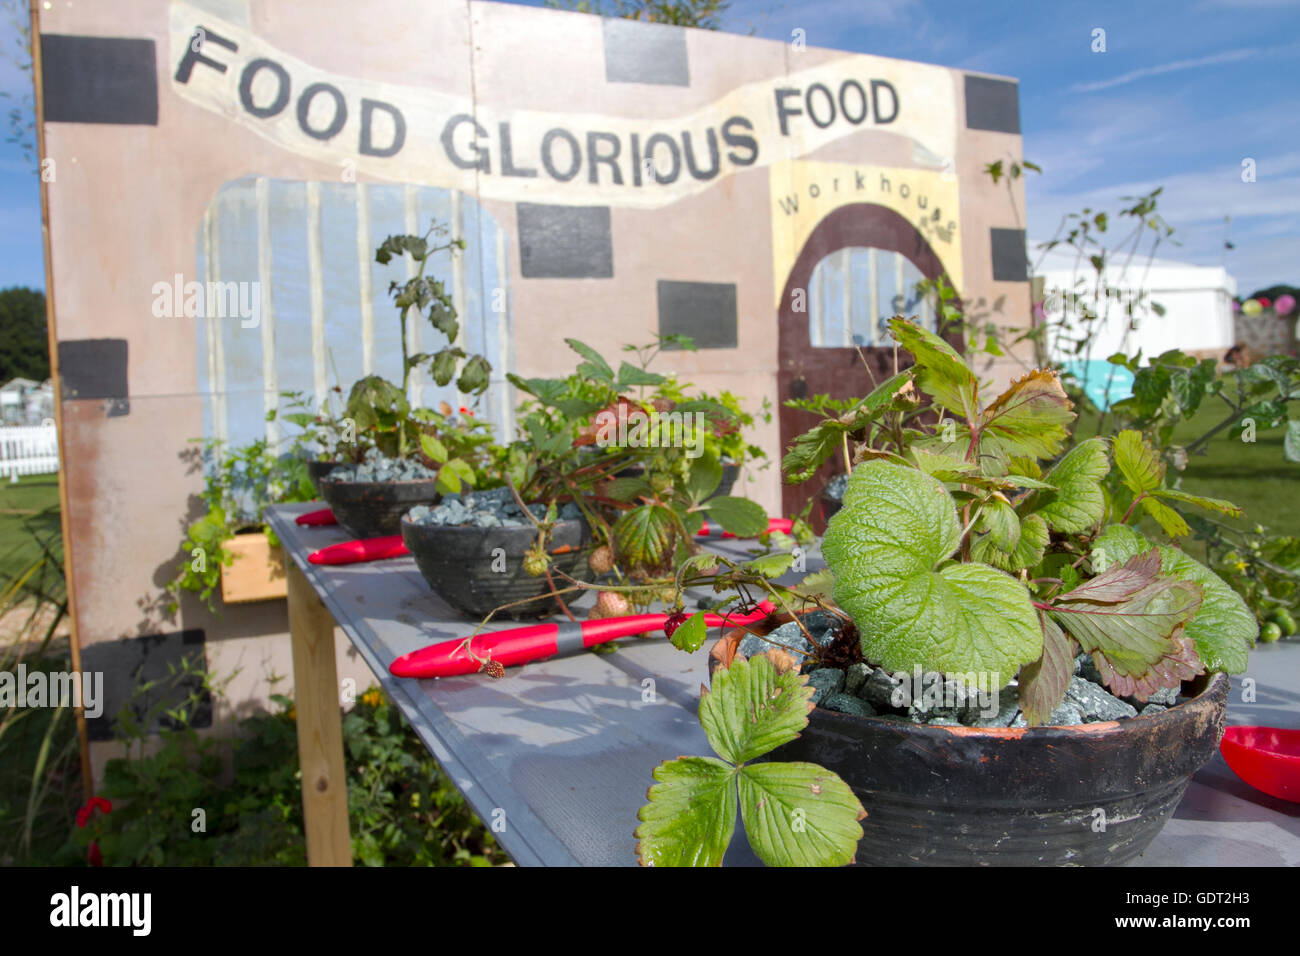 Tatton Park, Knutsford, UK. 21st July, 2016. The RHS Tatton Park Flower Show, the north's greatest garden event - Stock Image